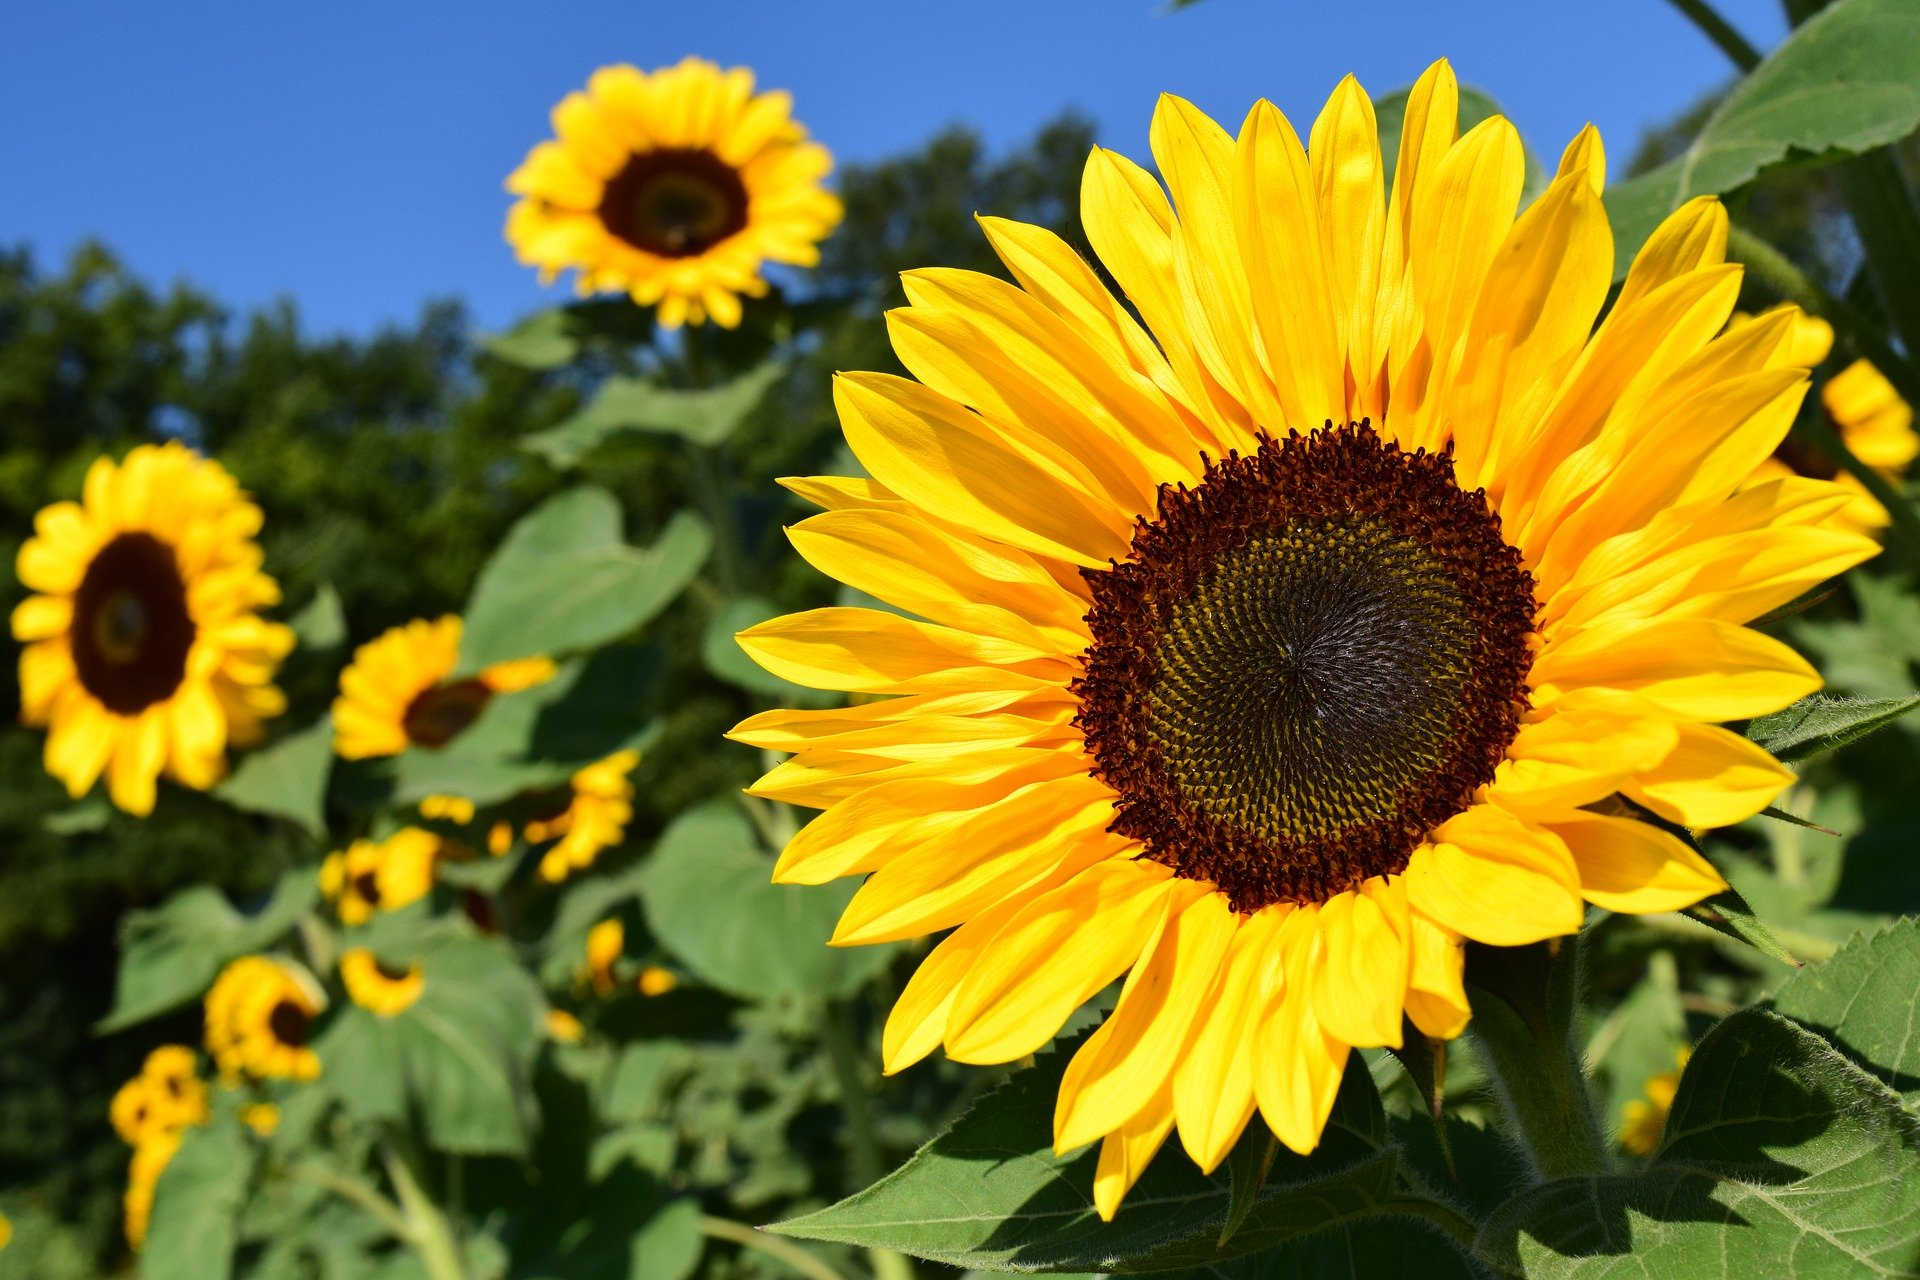 Above: Sunflowers put a smile on your face, just like Jo and Joanna do for their customers.